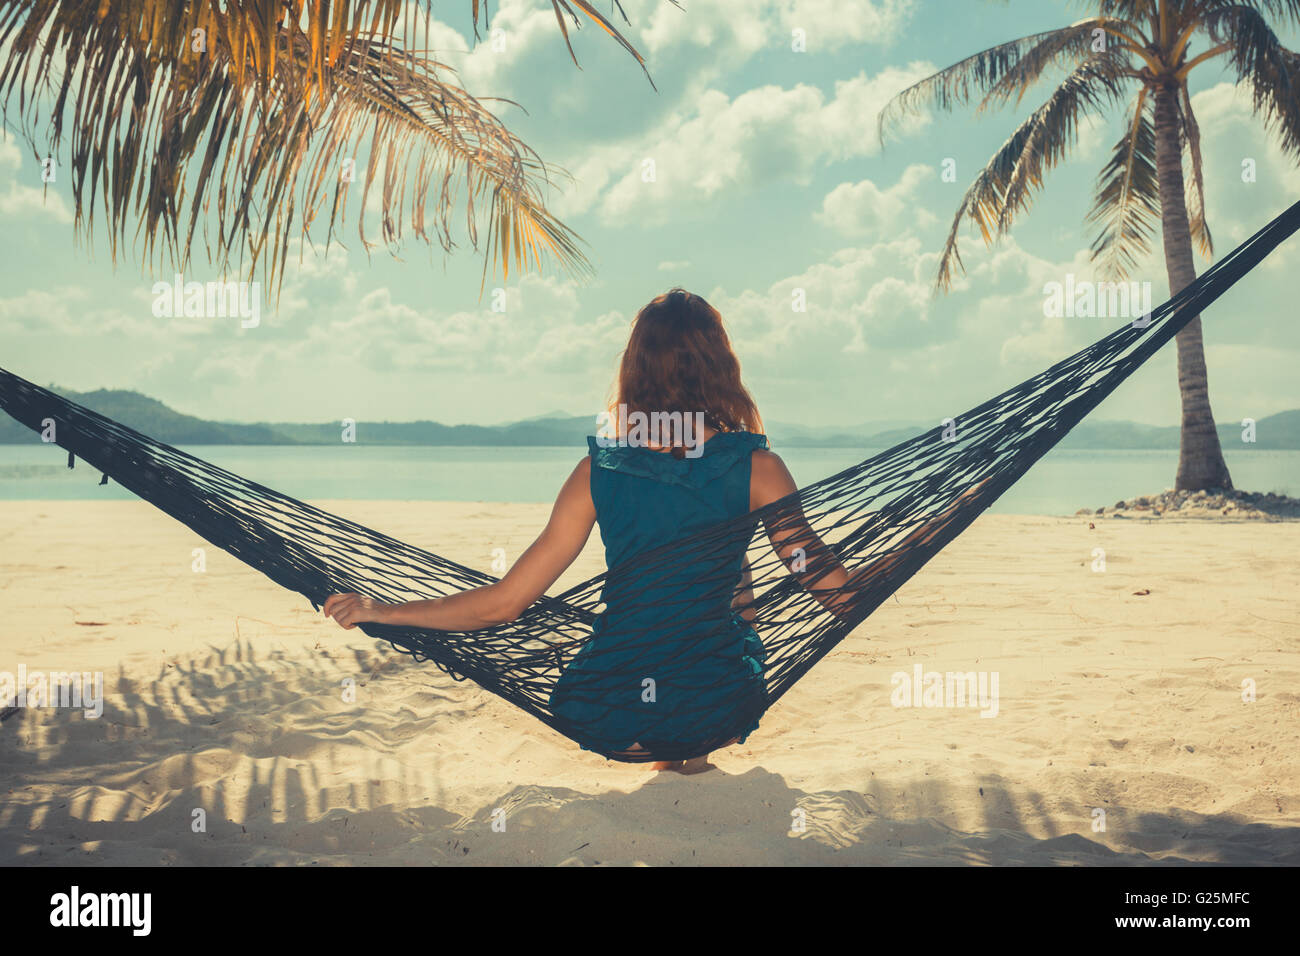 Vintage filtered shot of a young woman sitting in a hammock on a tropical beach - Stock Image